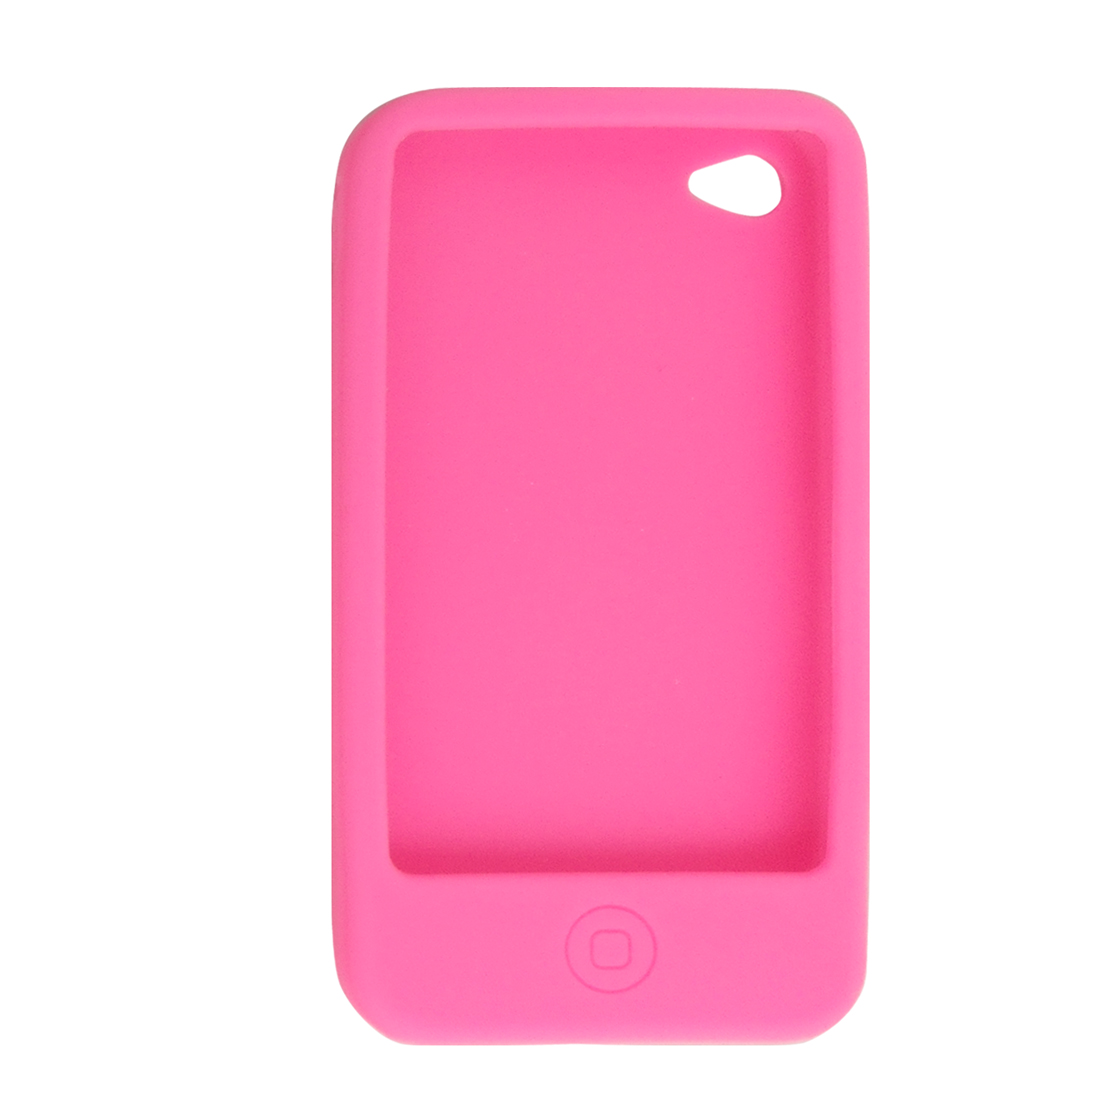 Hot Pink Soft Silicone Press Key Design Case for Apple iPhone 4 4G